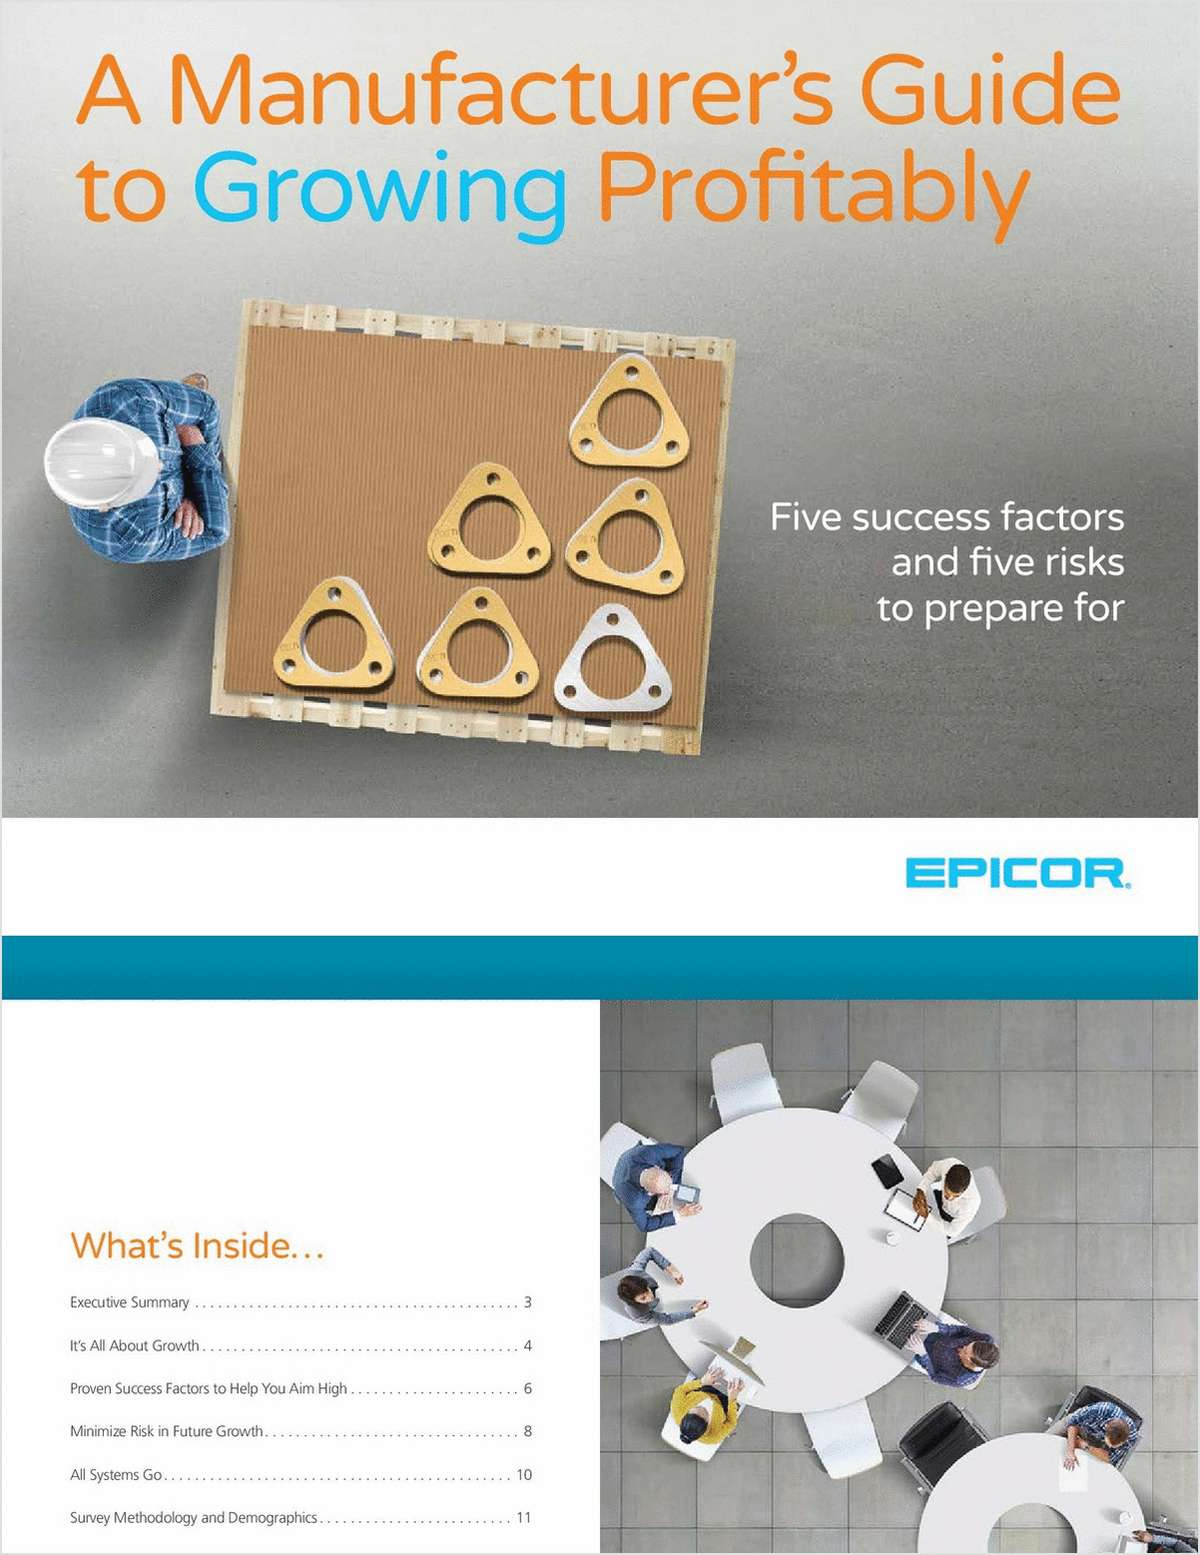 A Manufacturer's Guide to Growing Profitably